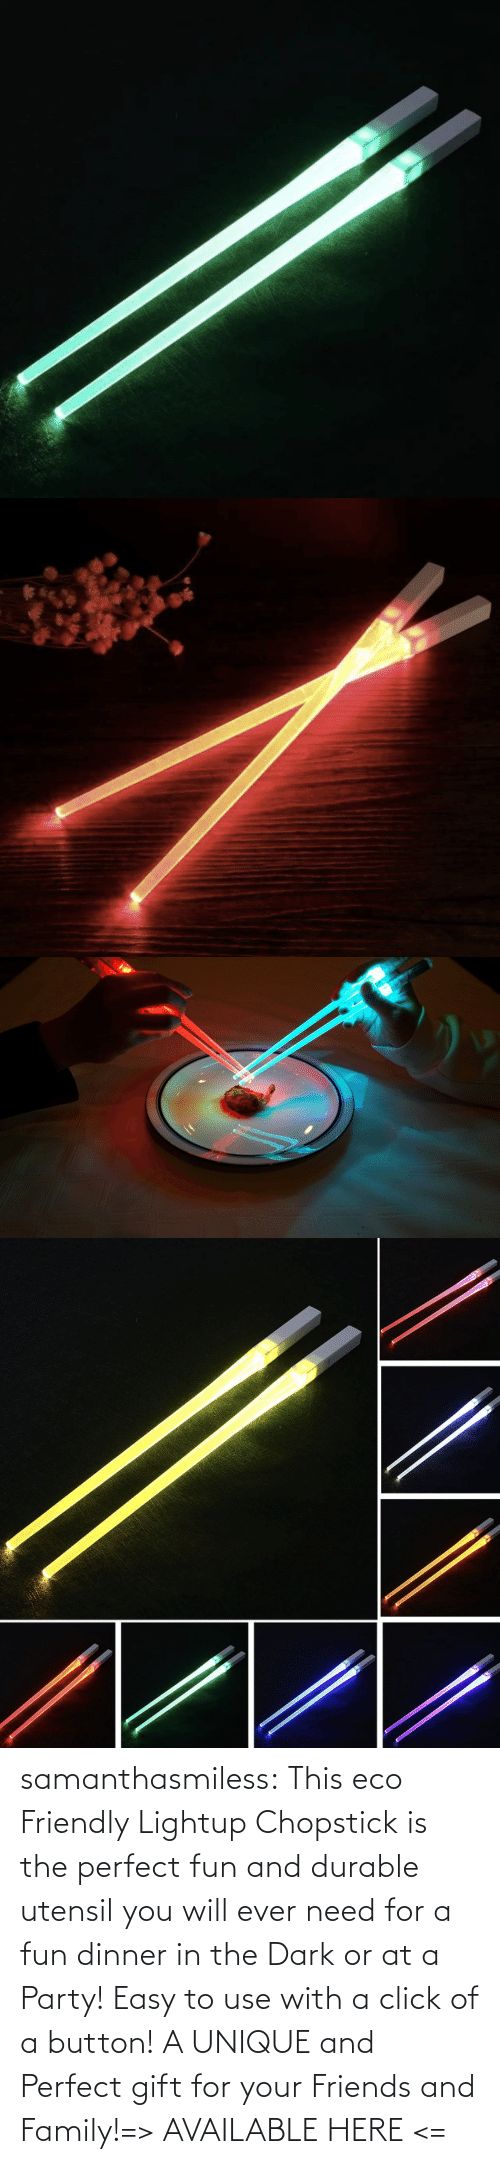 Friendly: samanthasmiless:  This eco Friendly Lightup Chopstick is the perfect fun and durable utensil you will ever need for a fun dinner in the Dark or at a Party! Easy to use with a click of a button! A UNIQUE and Perfect gift for your Friends and Family!=> AVAILABLE HERE <=